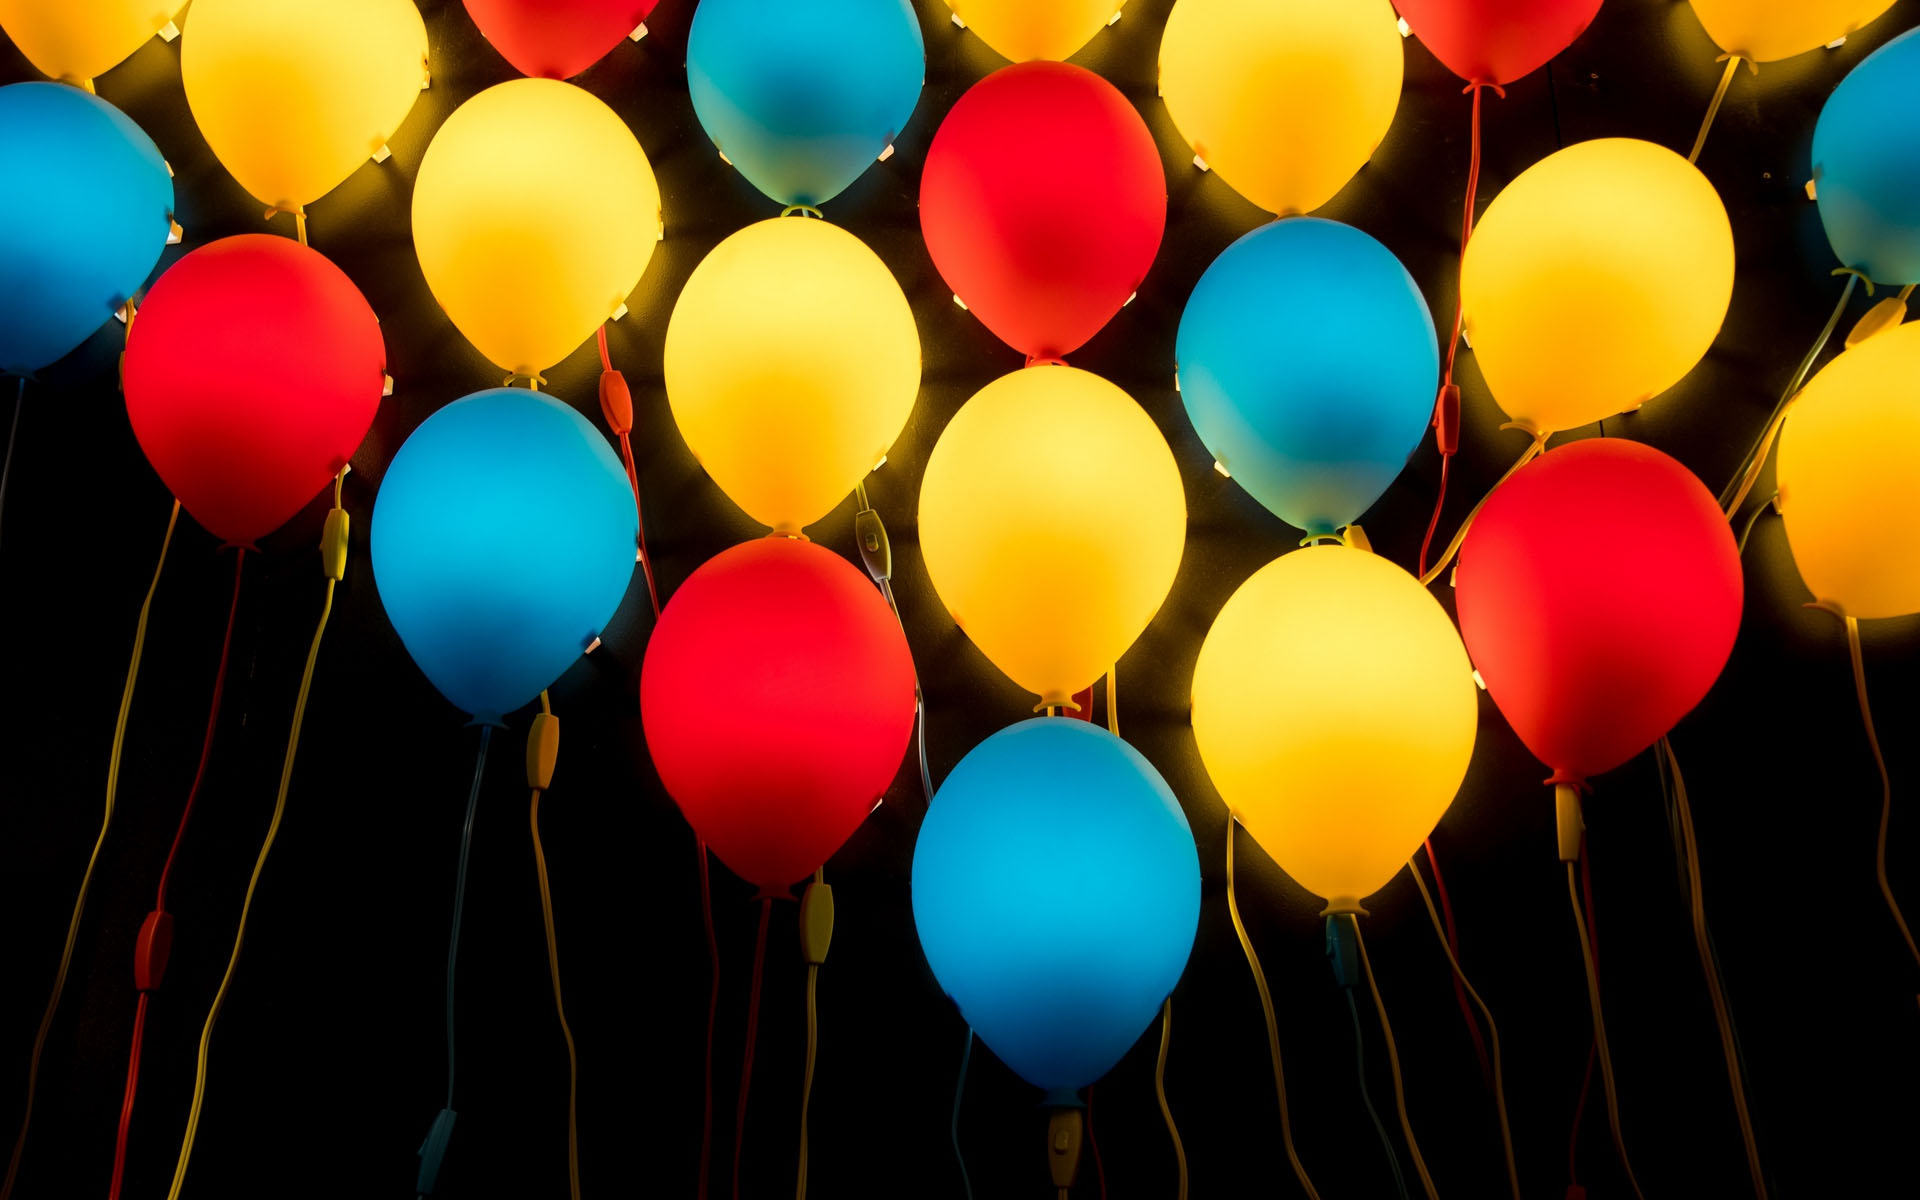 balloon images hd